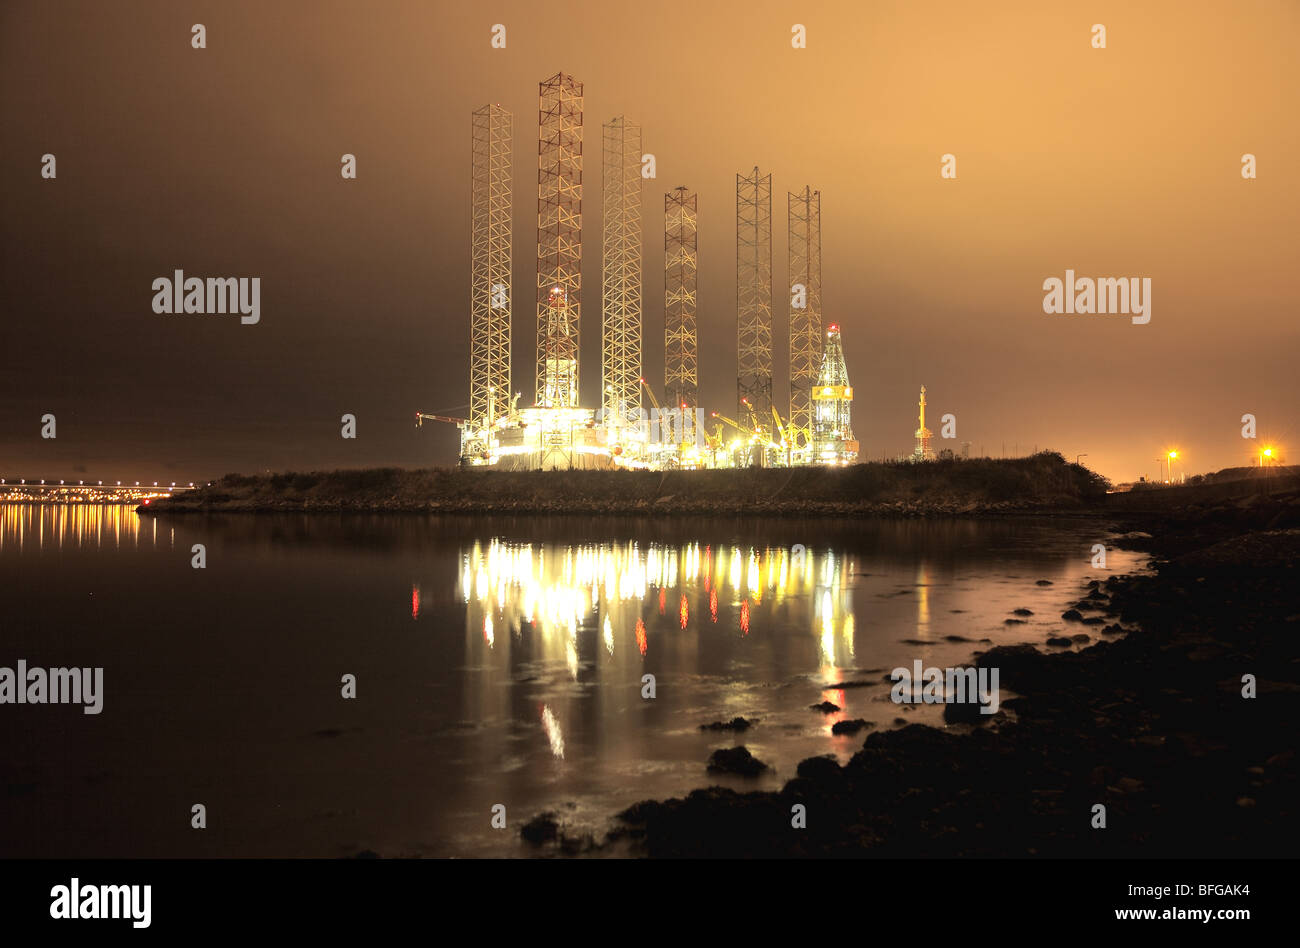 Dundee docks,oil construction - Stock Image